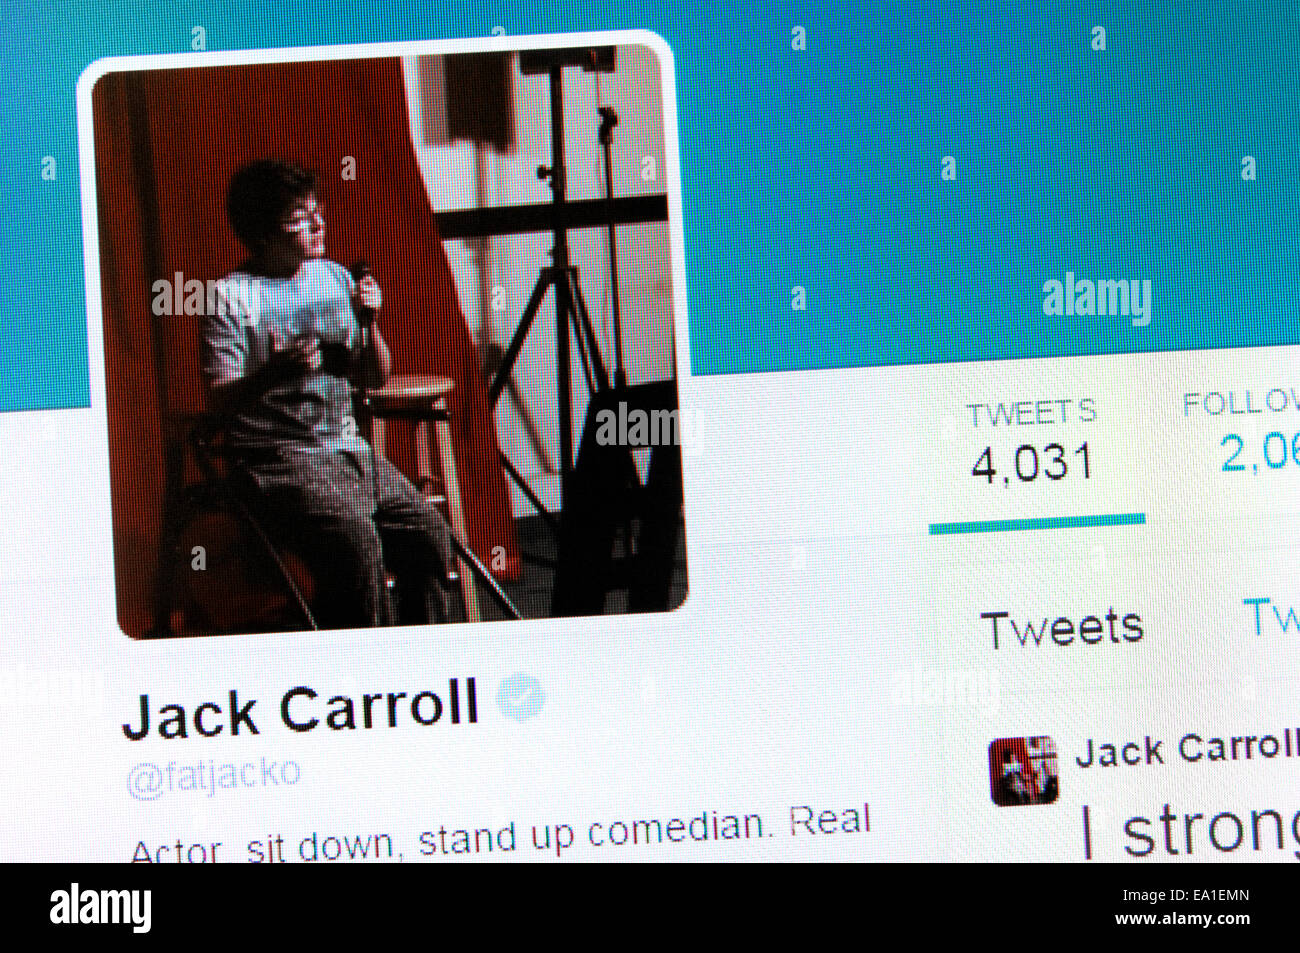 Jack Carroll's Twitter account - screenshot of profile page - Stock Image